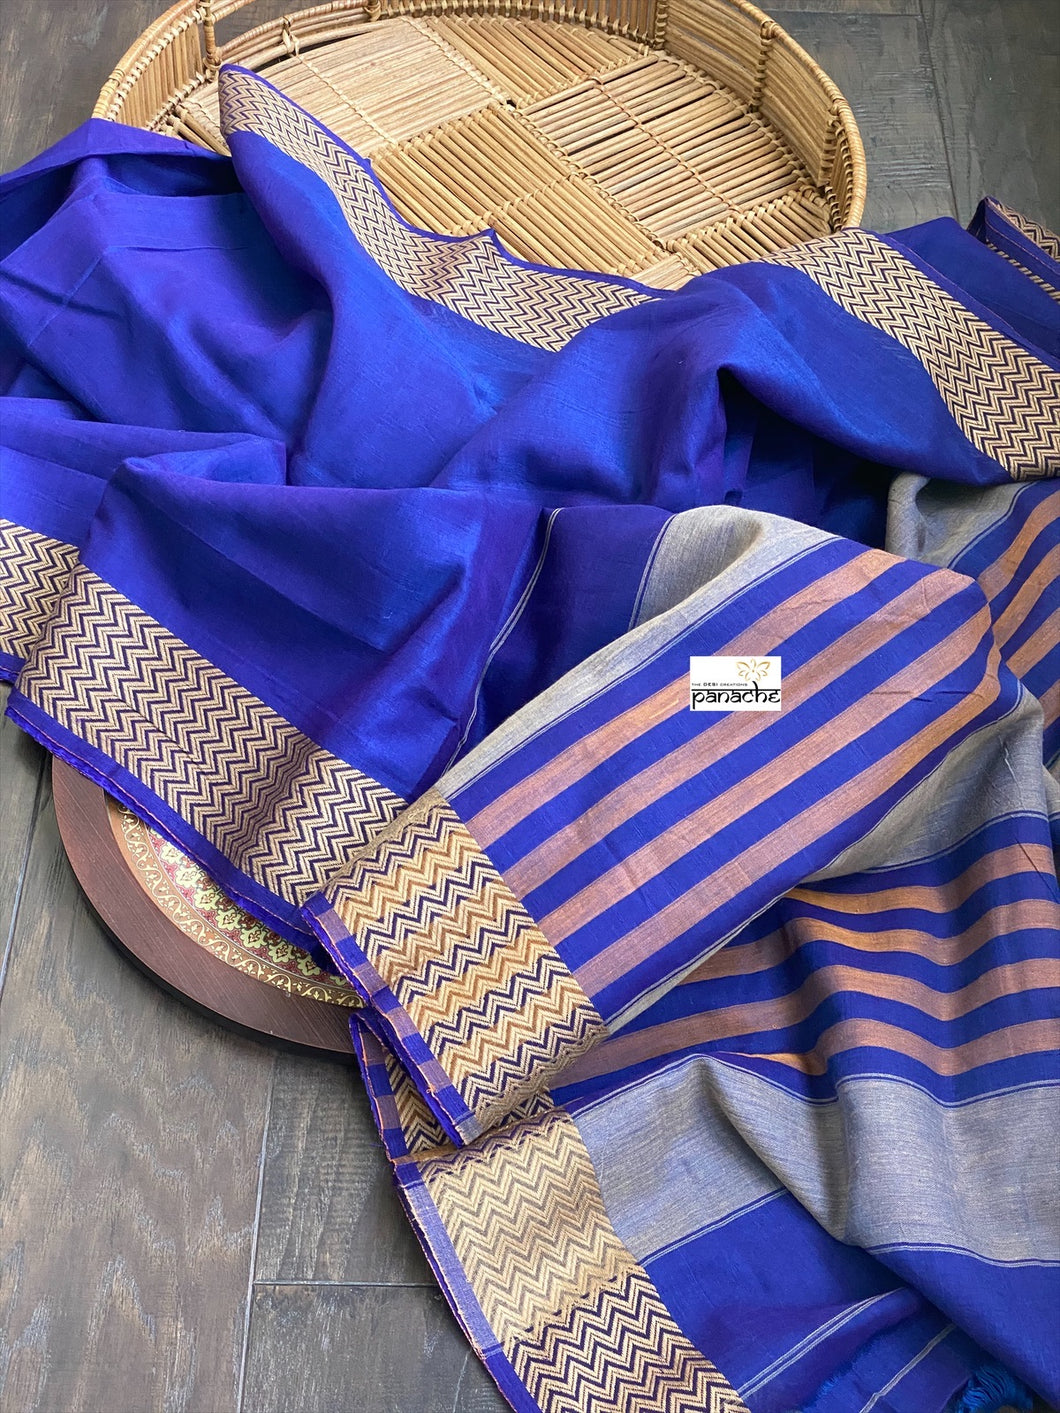 Narayan Peth Cotton Saree - Purplish Blue